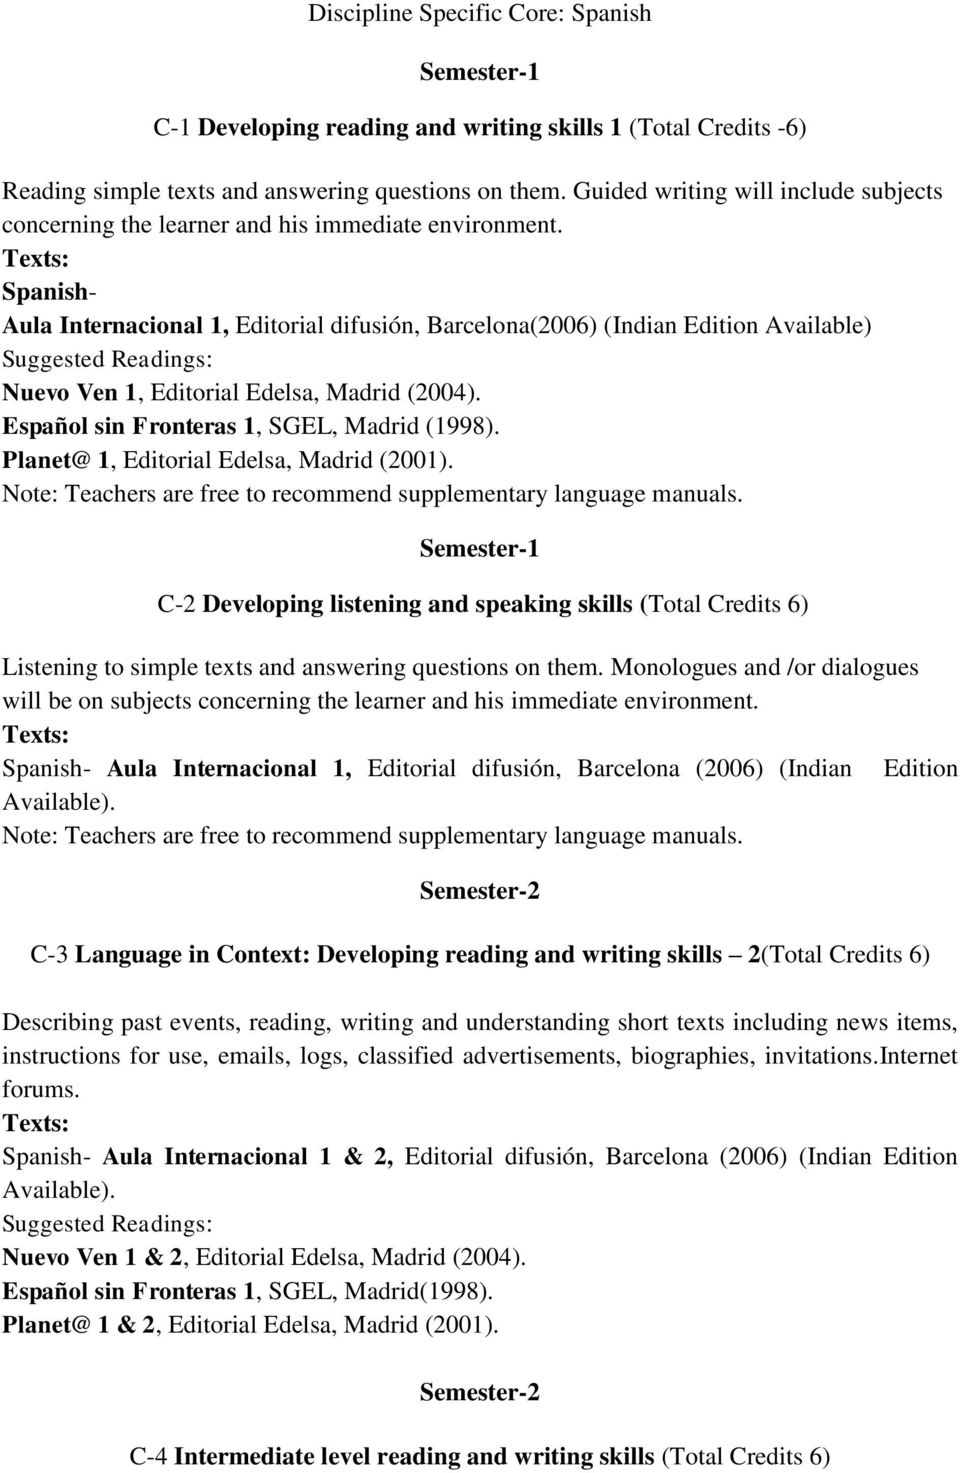 Spanish- Aula Internacional 1, Editorial difusión, Barcelona(2006) (Indian Edition Available) Suggested Readings: Nuevo Ven 1, Editorial Edelsa, Madrid (2004).